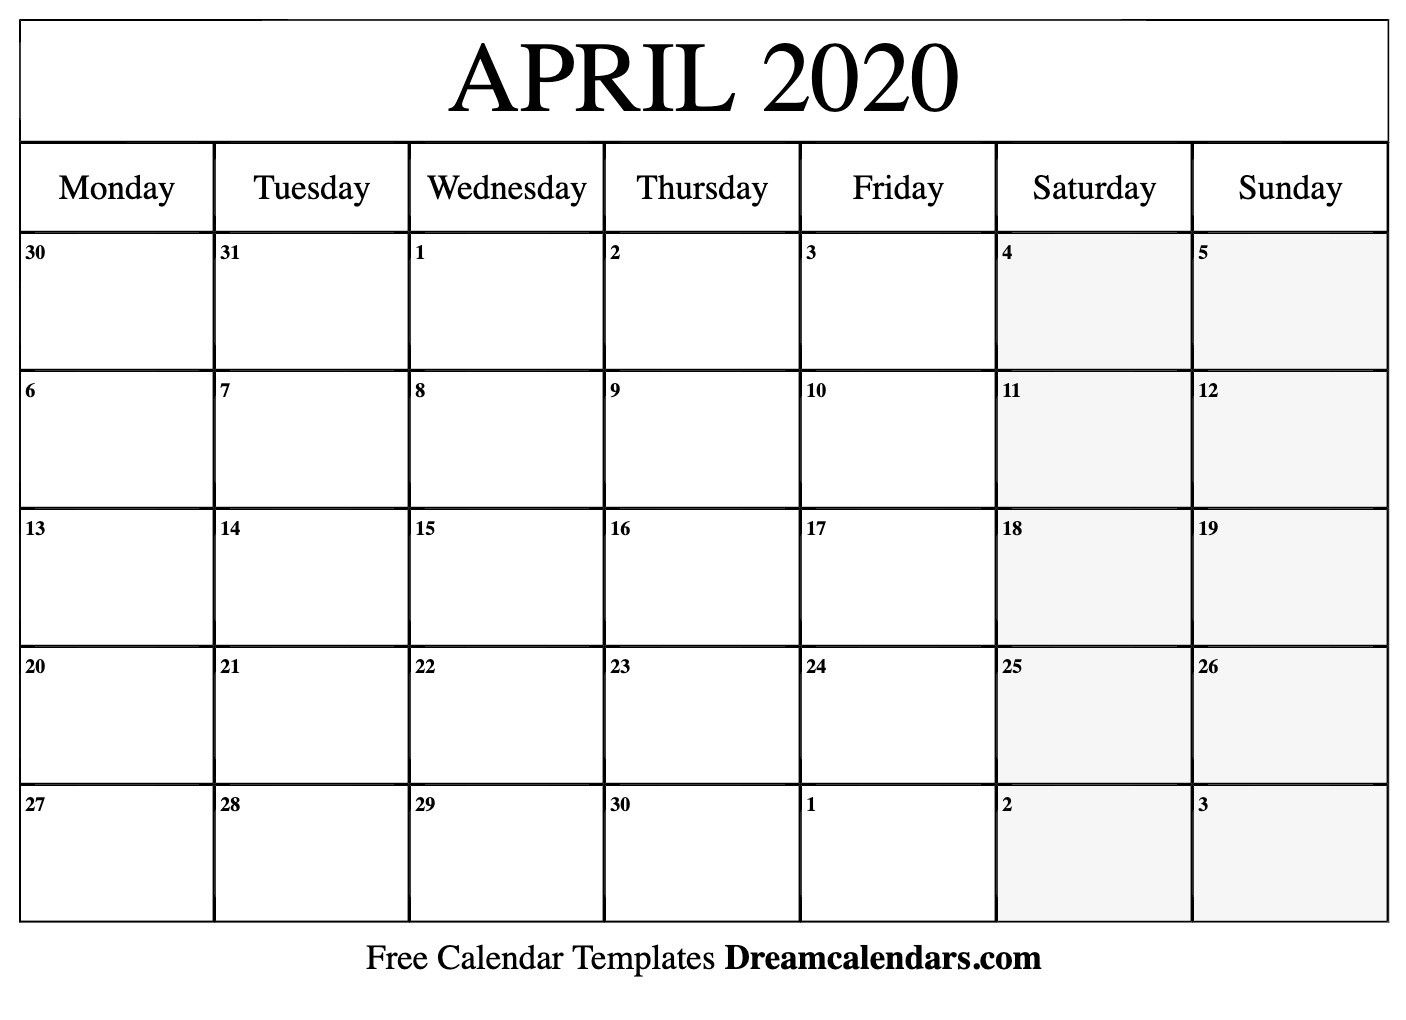 printable april 2020 calendar templates |helena orstem